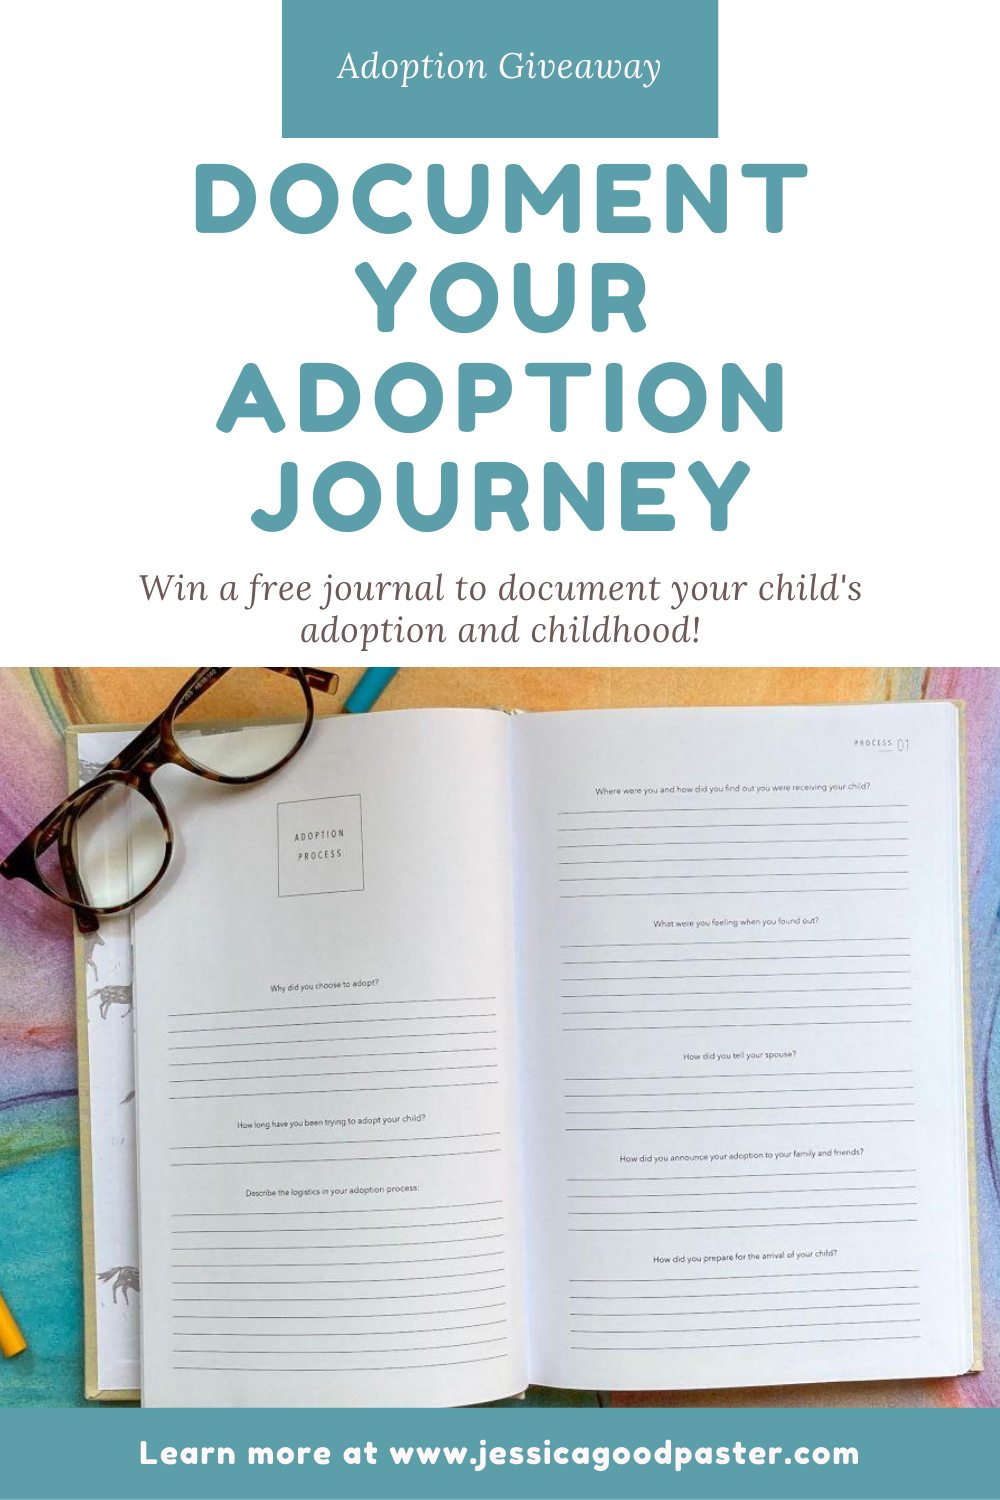 The Best Guided Journals for Adults and Kids   jessicagoodpaster.com